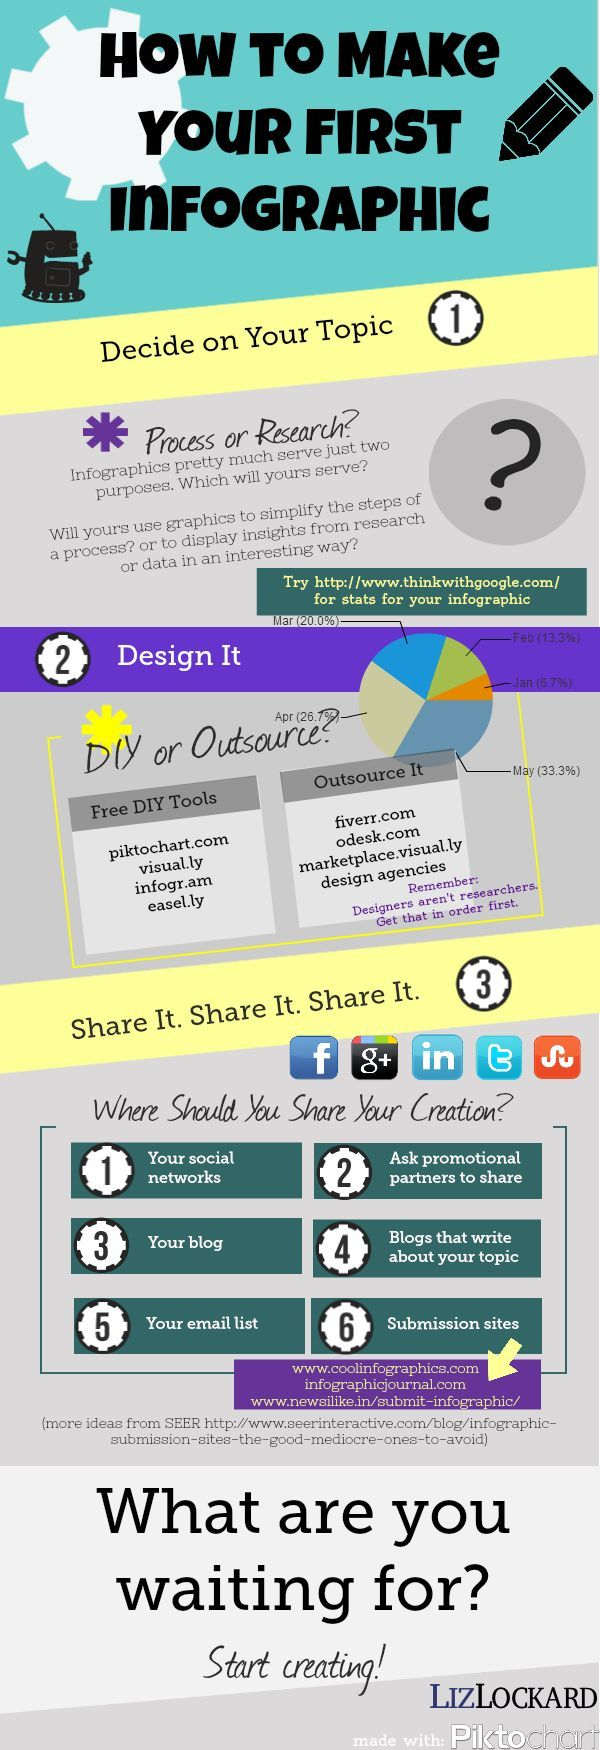 Check this out: An infographic about creating an infographic